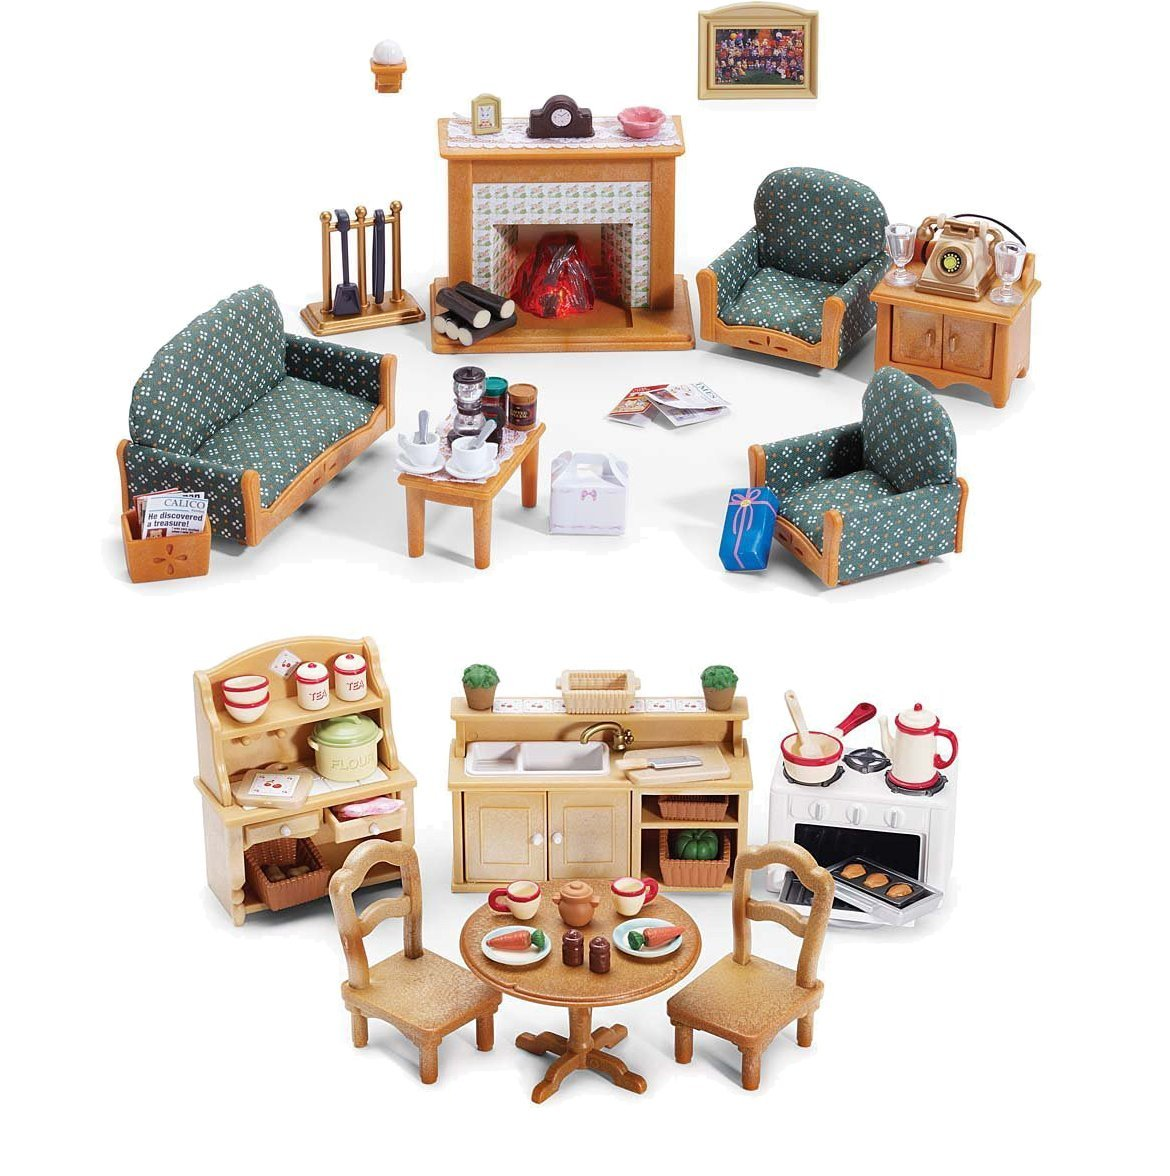 Calico Critters Deluxe Living Room Set and Deluxe Kitchen Set